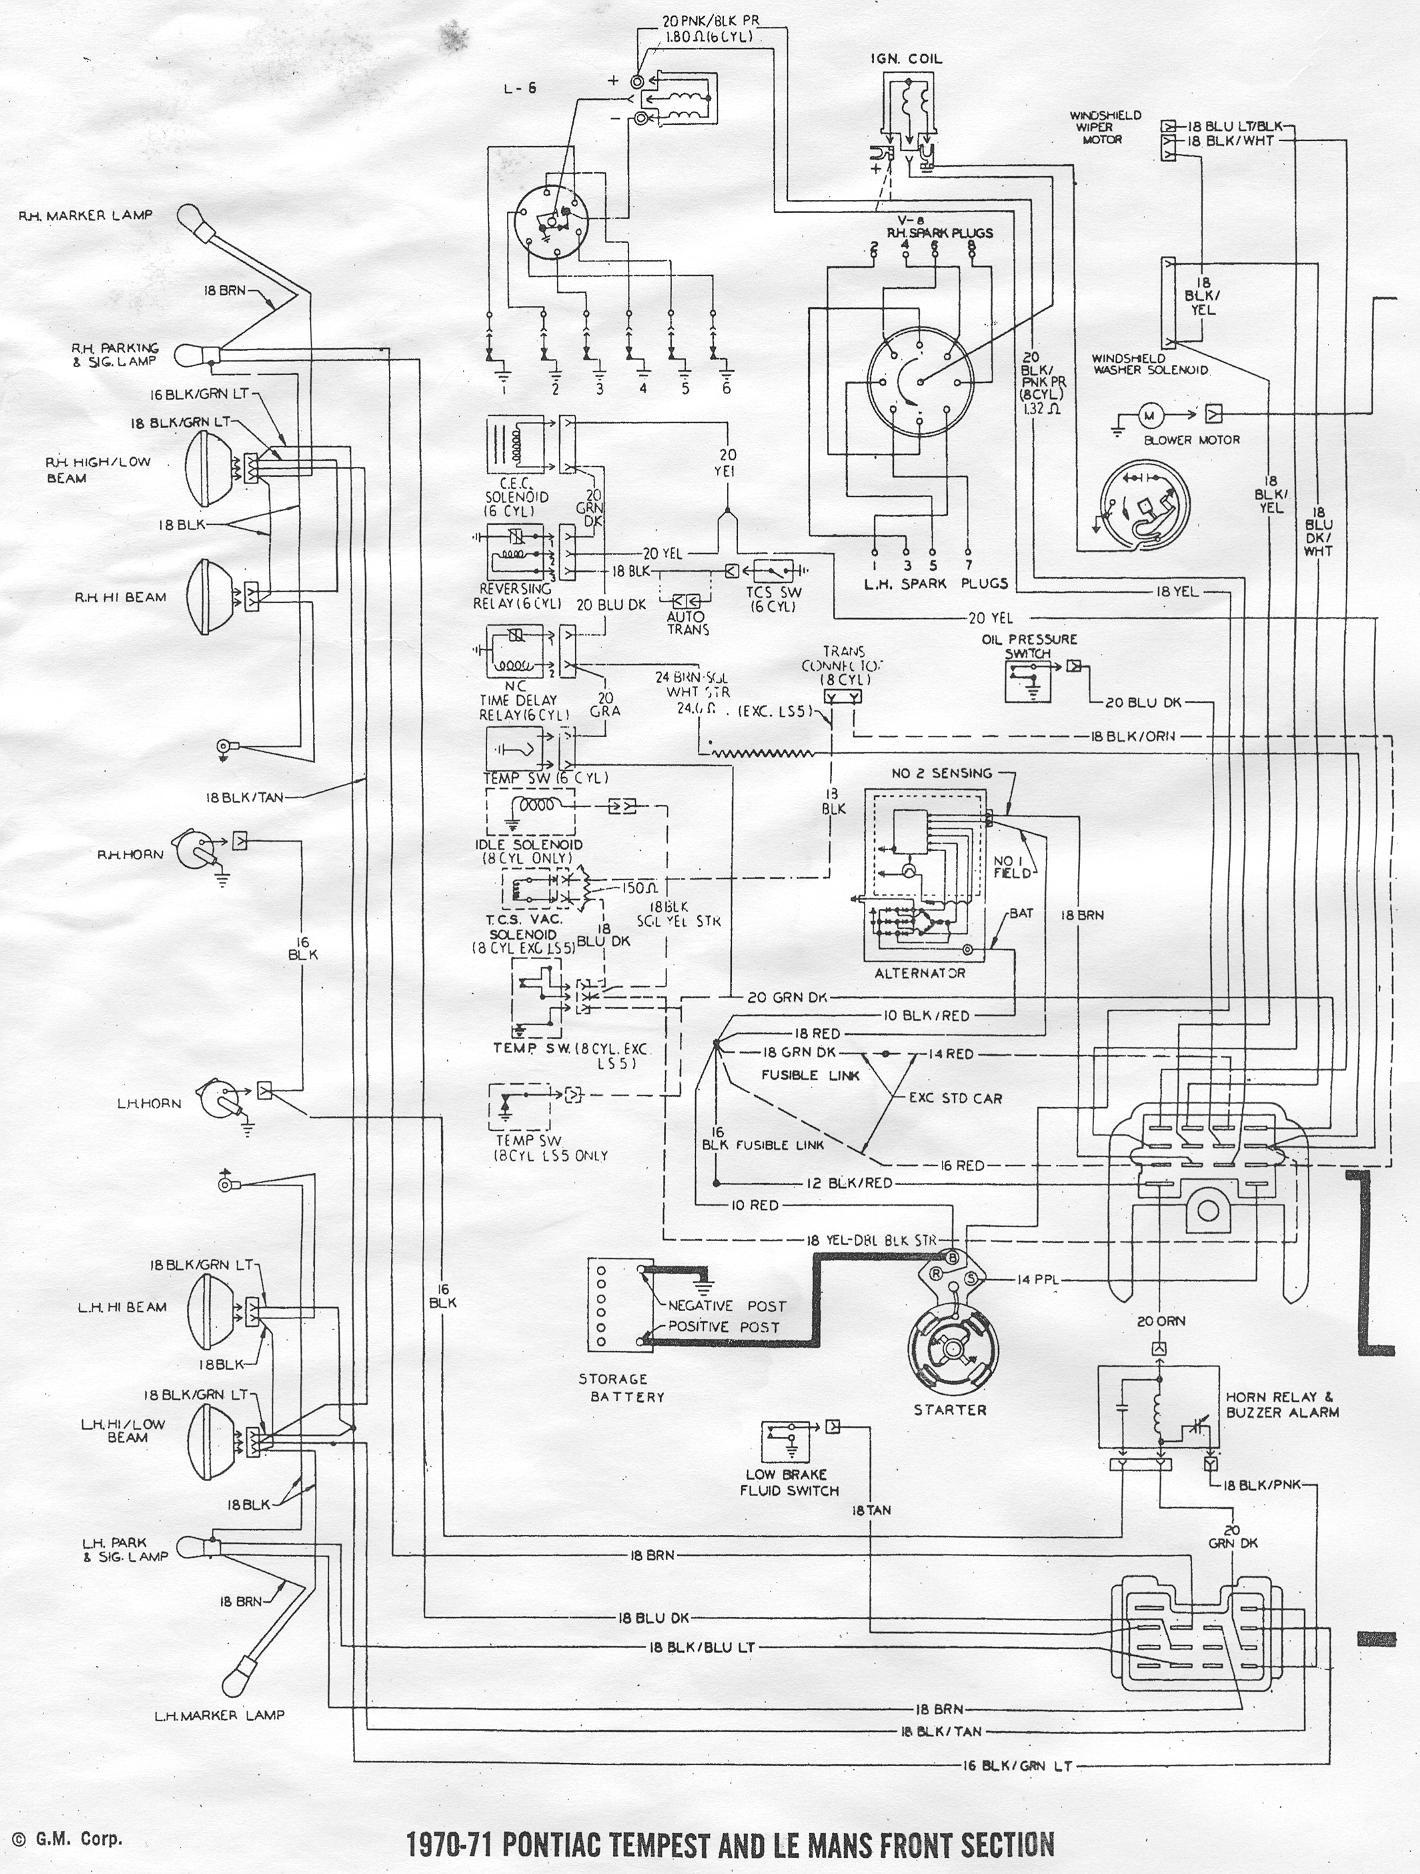 1970 chevelle wiring harness wiring diagram 1964 77 chevelle wiring harness kit highway 22 by american